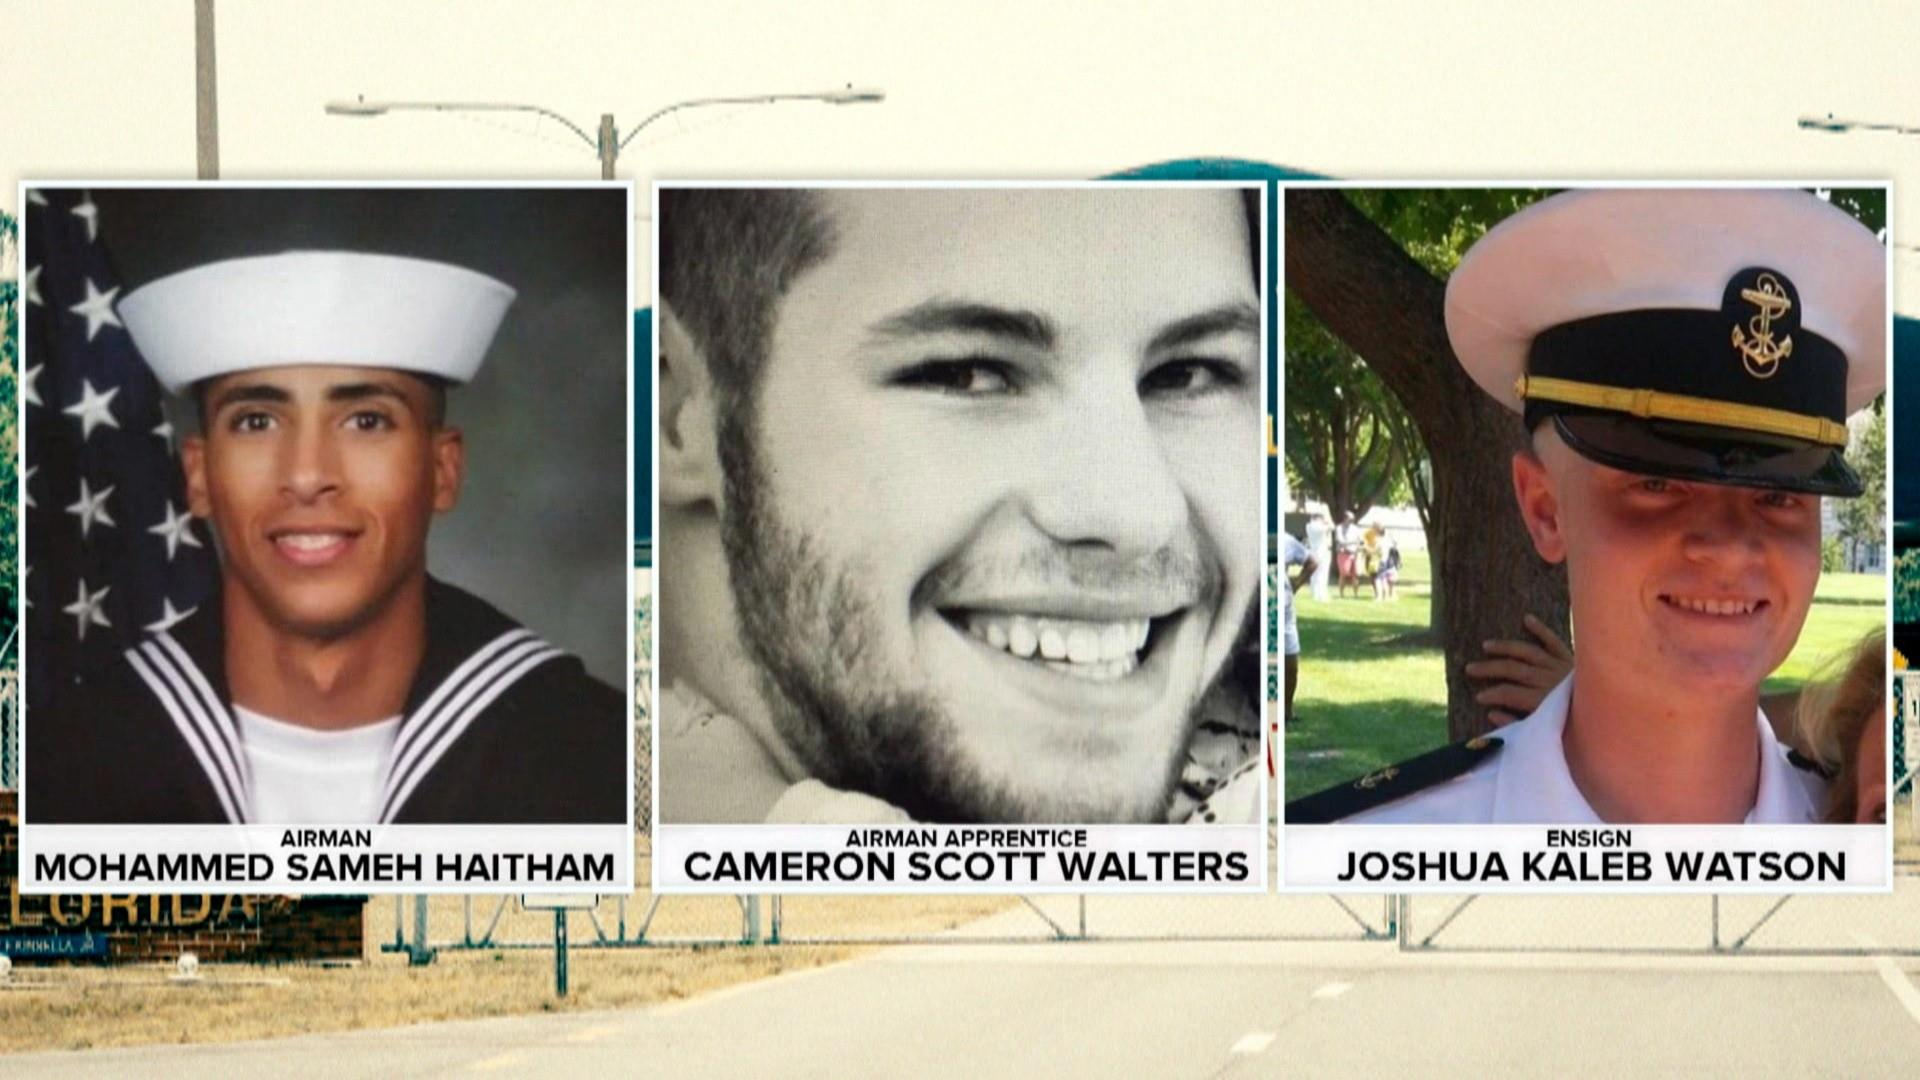 Army-Navy game to honor three slain in Florida naval base shooting